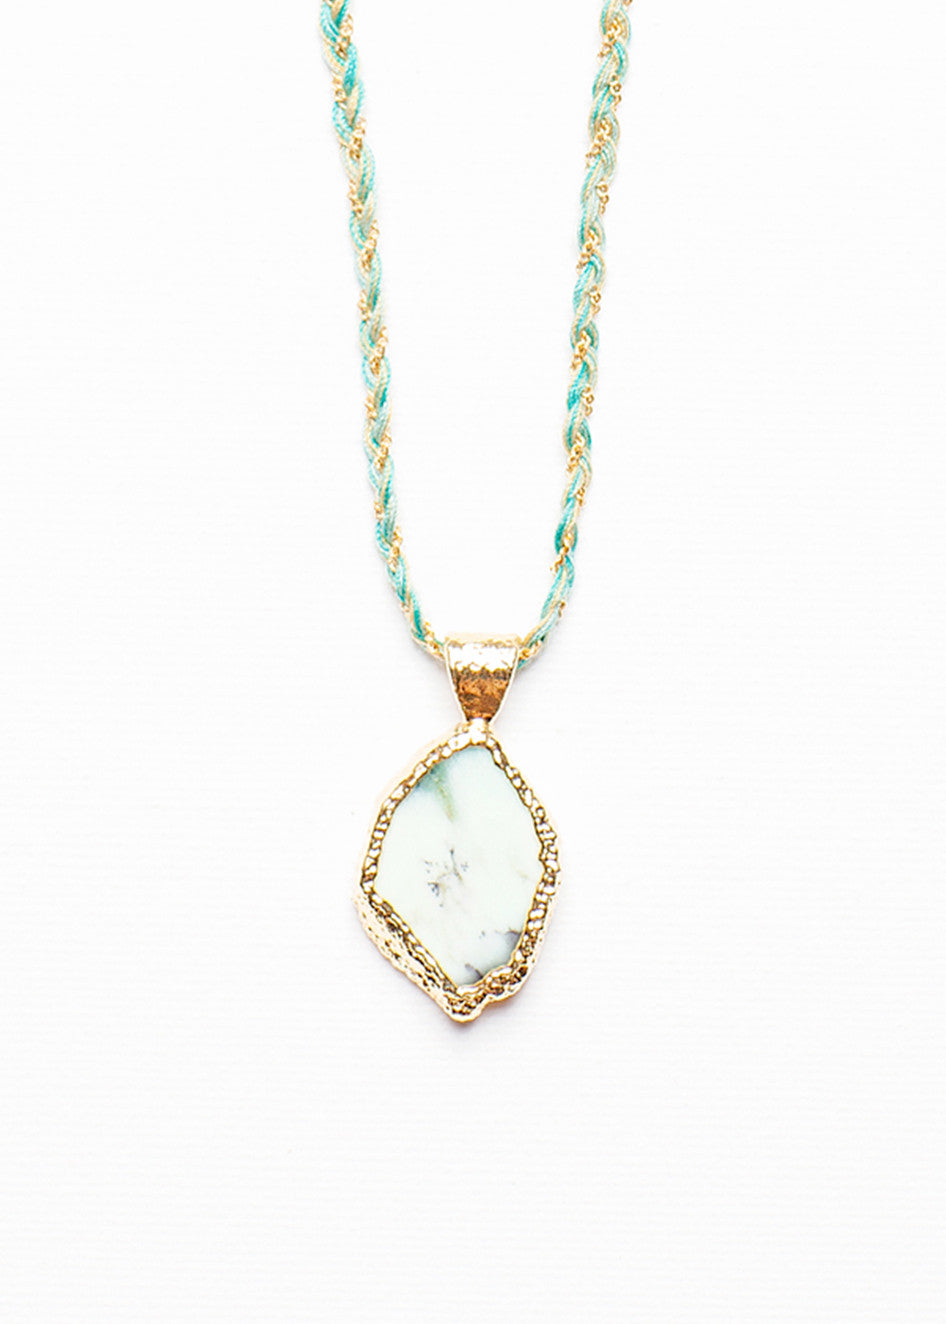 nalani chrysoprase necklace products amaleia